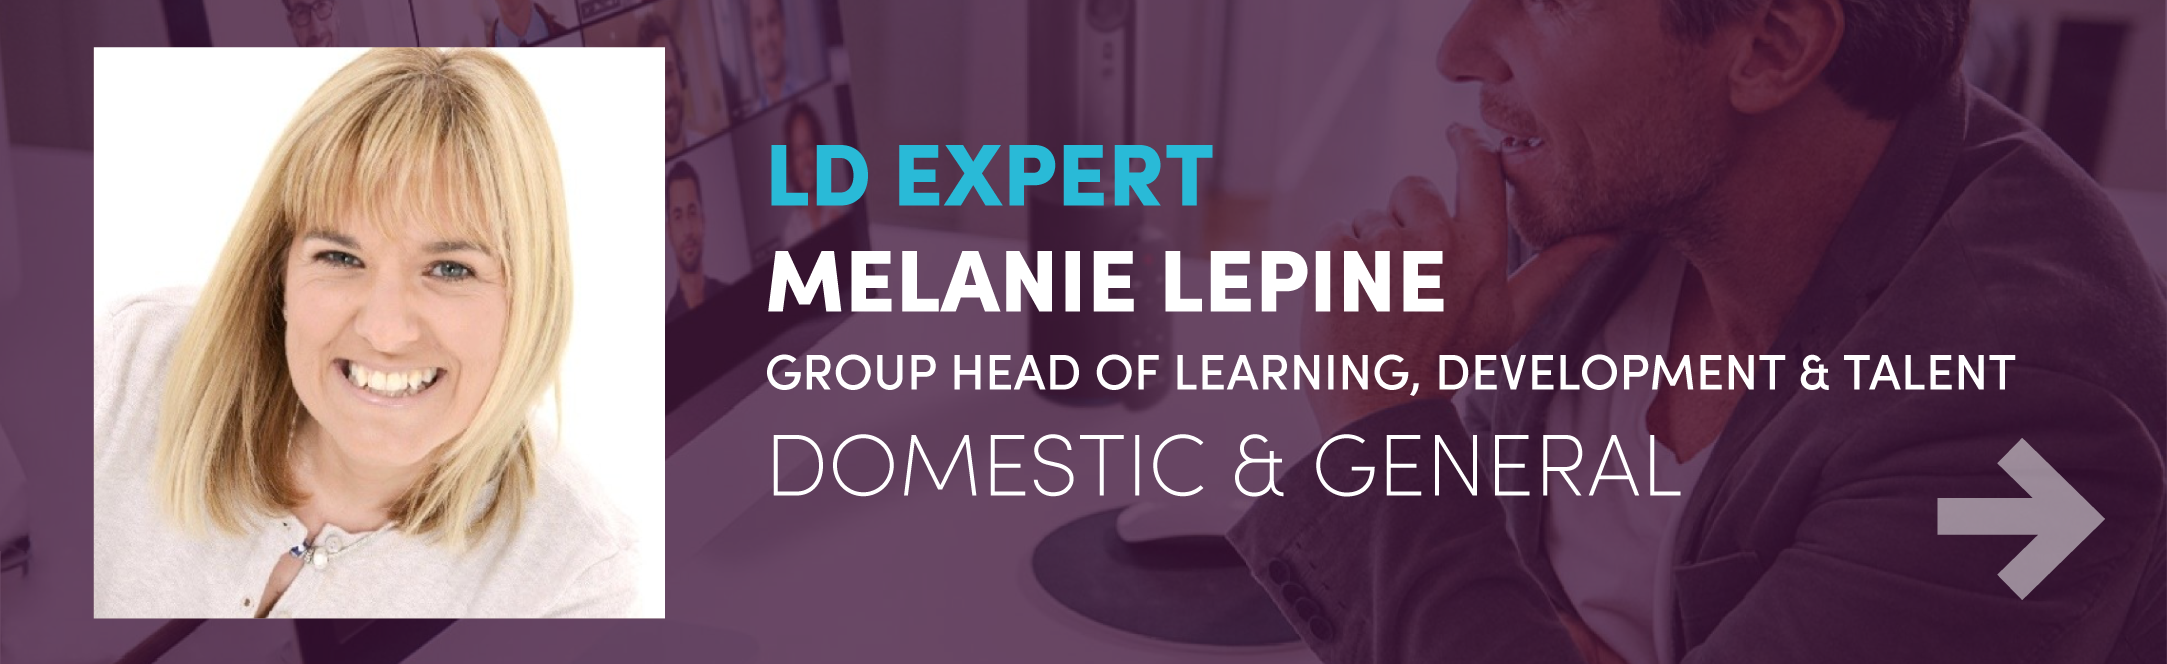 Melanie Lepine ld expert domestic and general